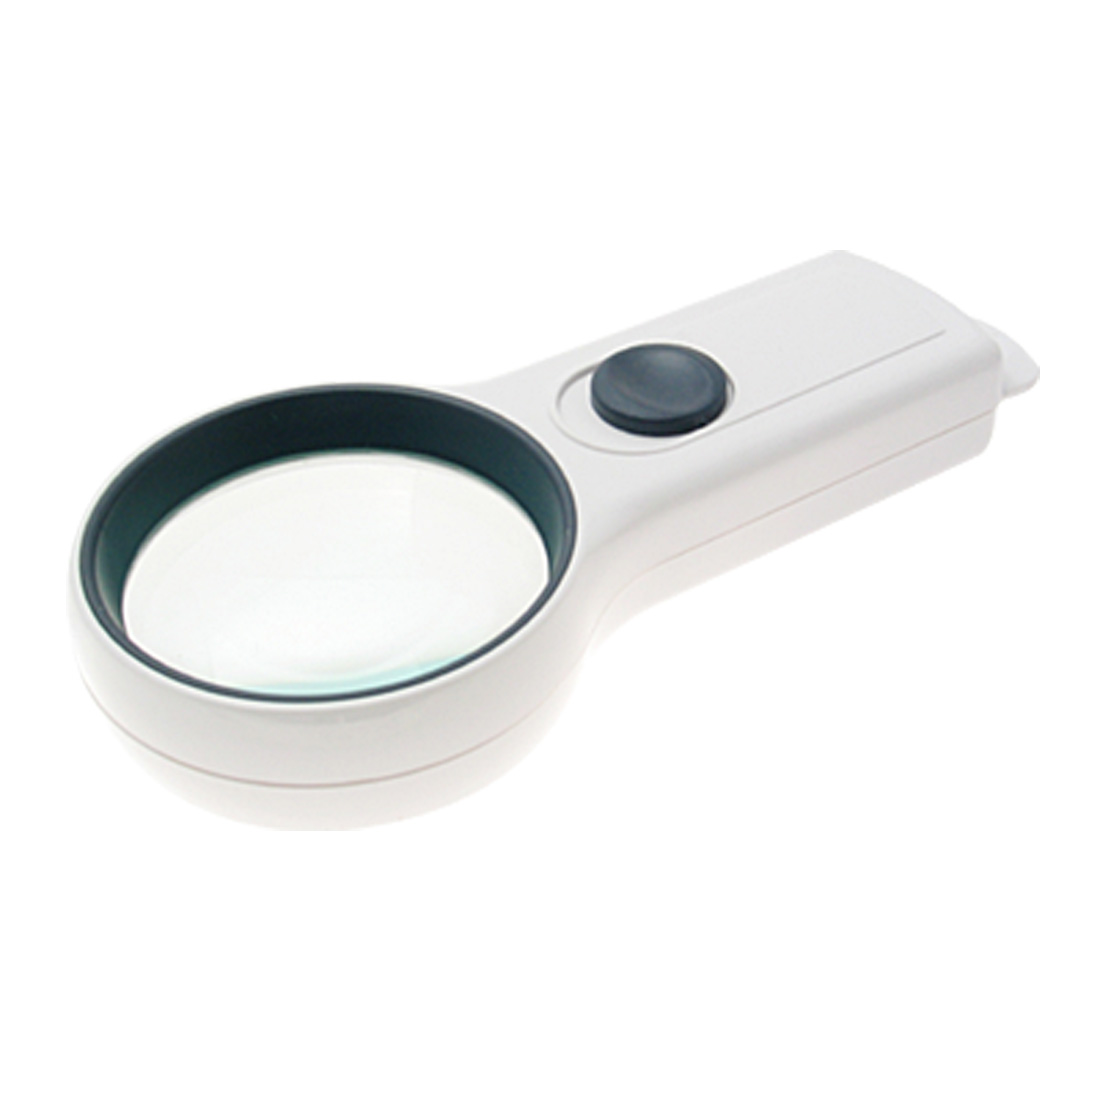 Pocket Illuminated Magnifier Magnifying Glass 4X MagnifierWhite